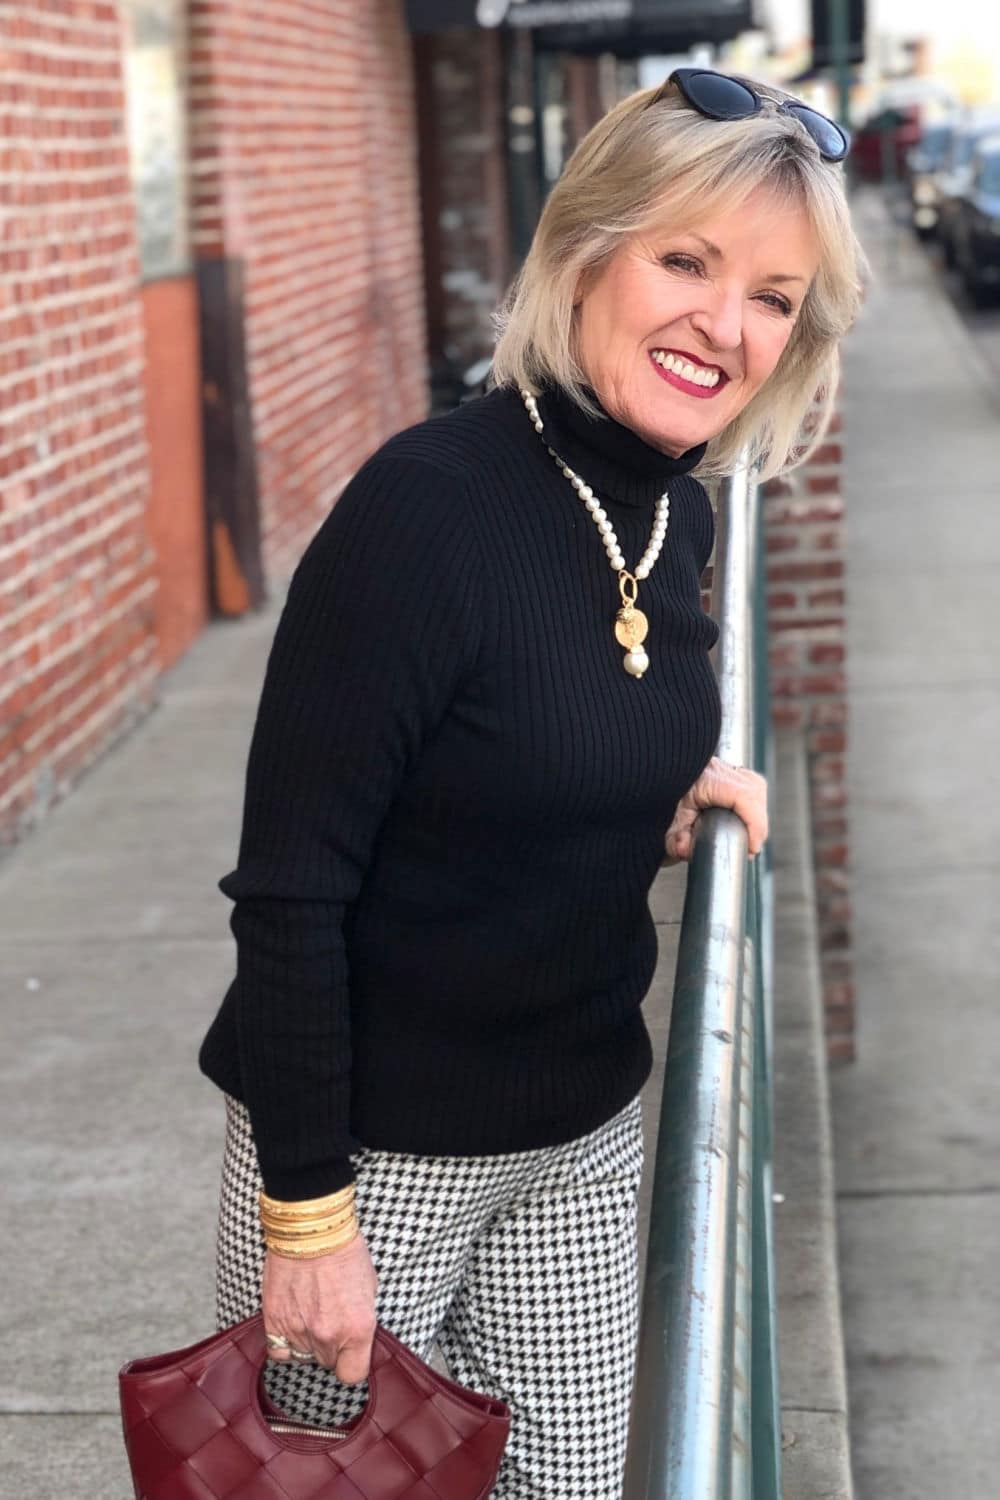 over 50 fahion blogger jennifer connolly wearing chicos coolmax turtleneck and houndstooth pants